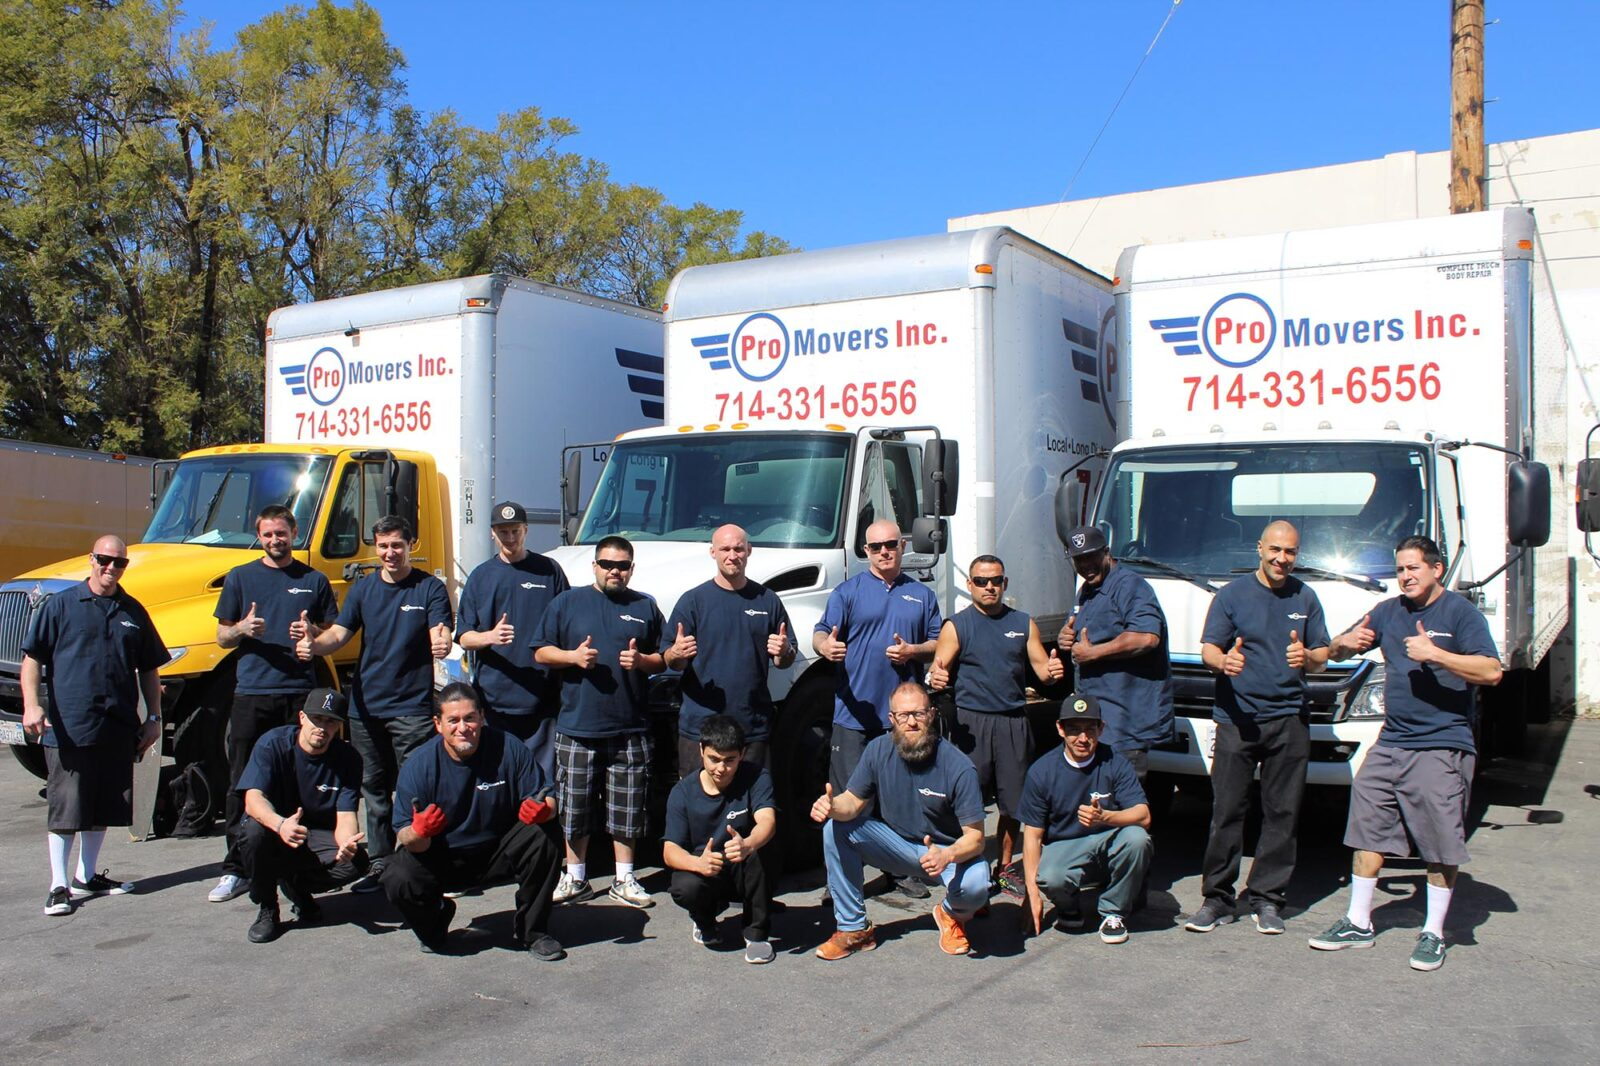 Why choose Pro Movers Inc. as the best moving company?